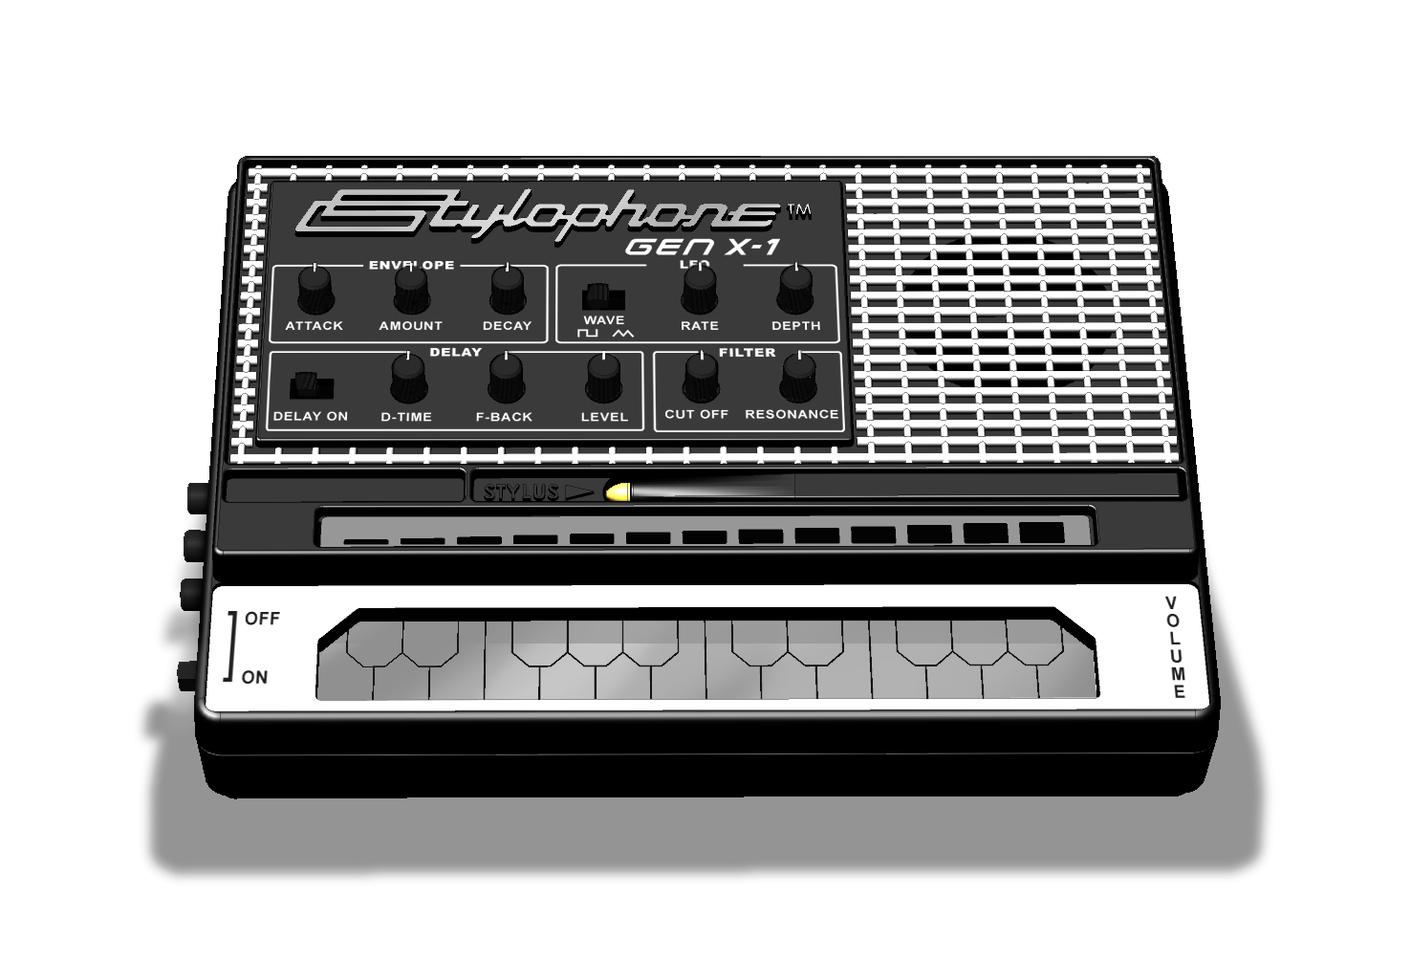 The Stylophone Gen X-1 debuts at NAMM 2017, before going onsale in May